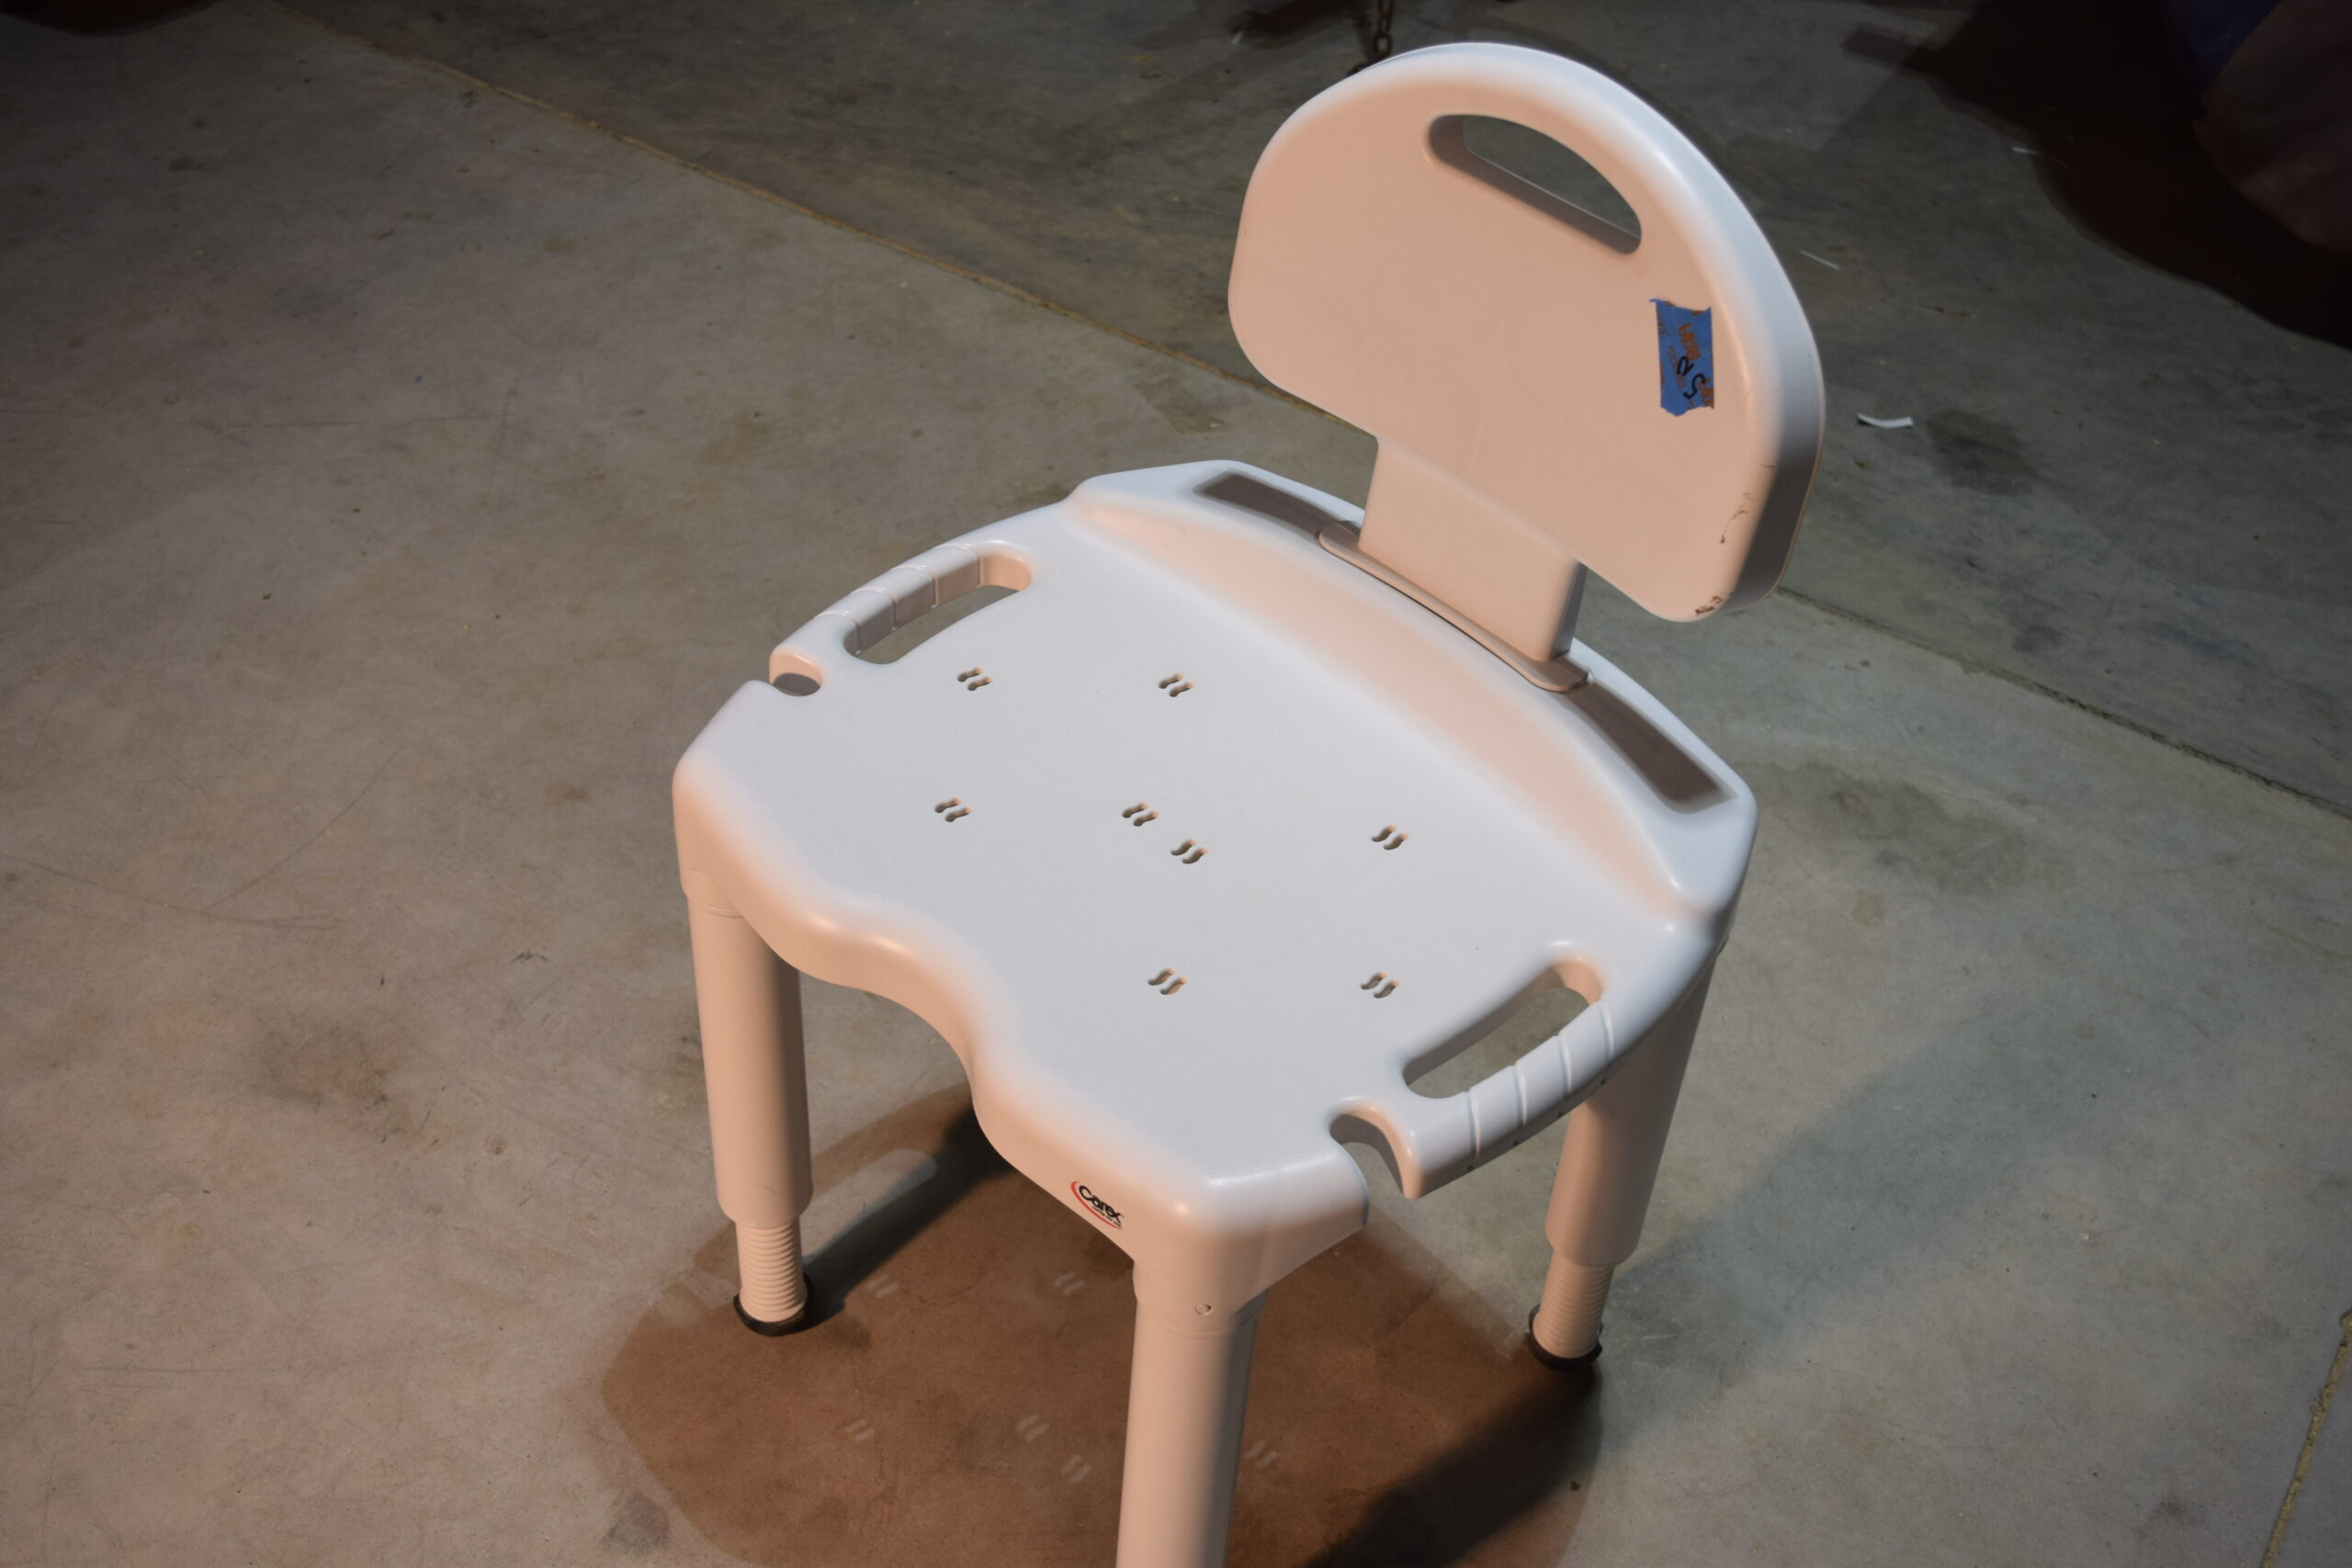 Carex Shower Chair Handihub More Therapy Equipment Available